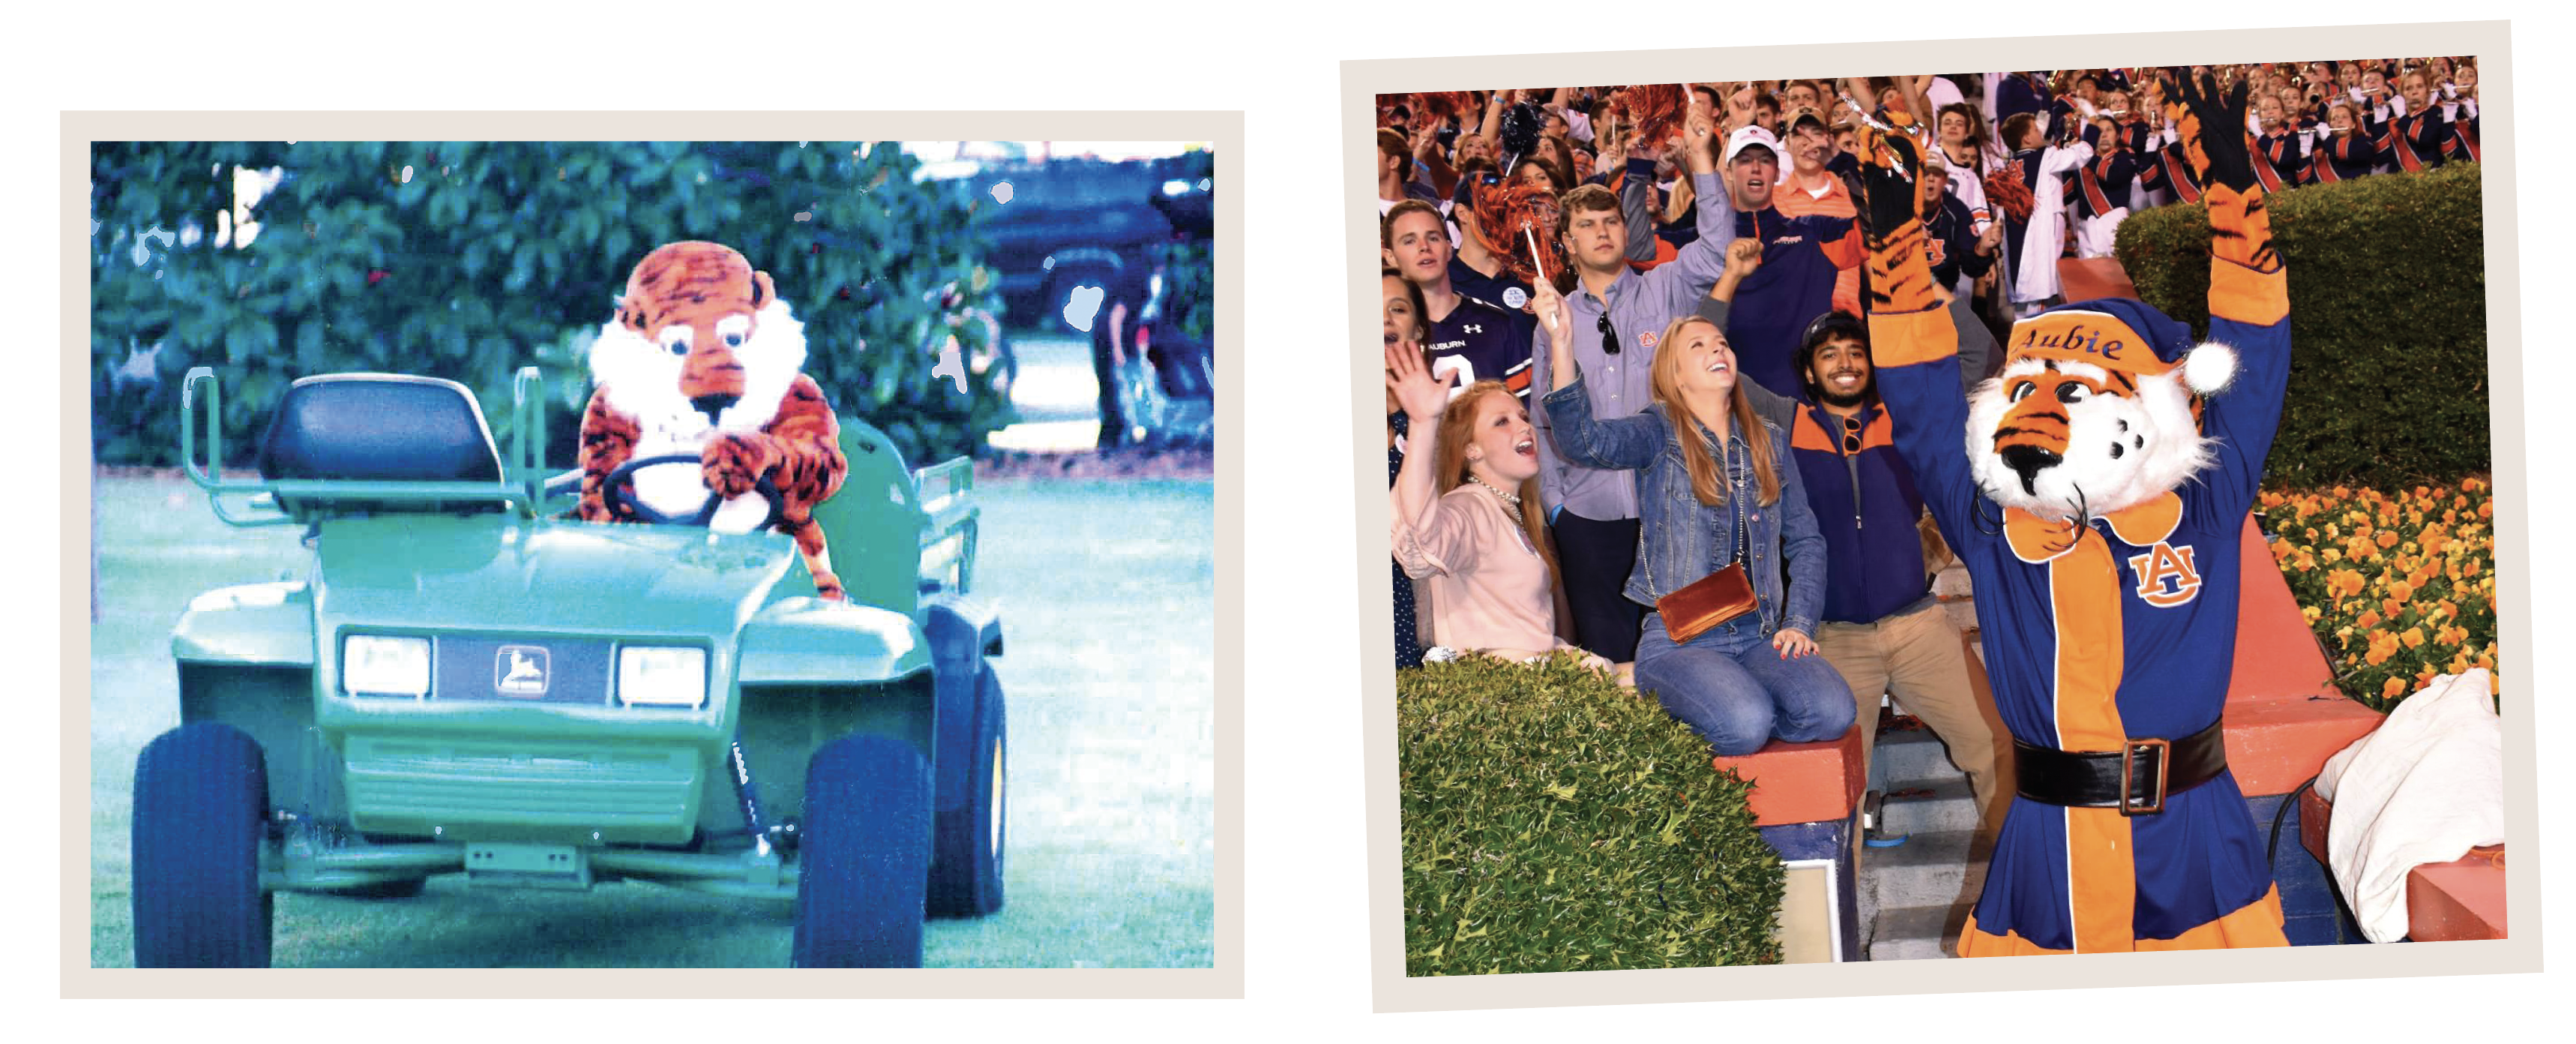 Aubie on the John Deere Gator and Aubie Claus in Jordan Hare